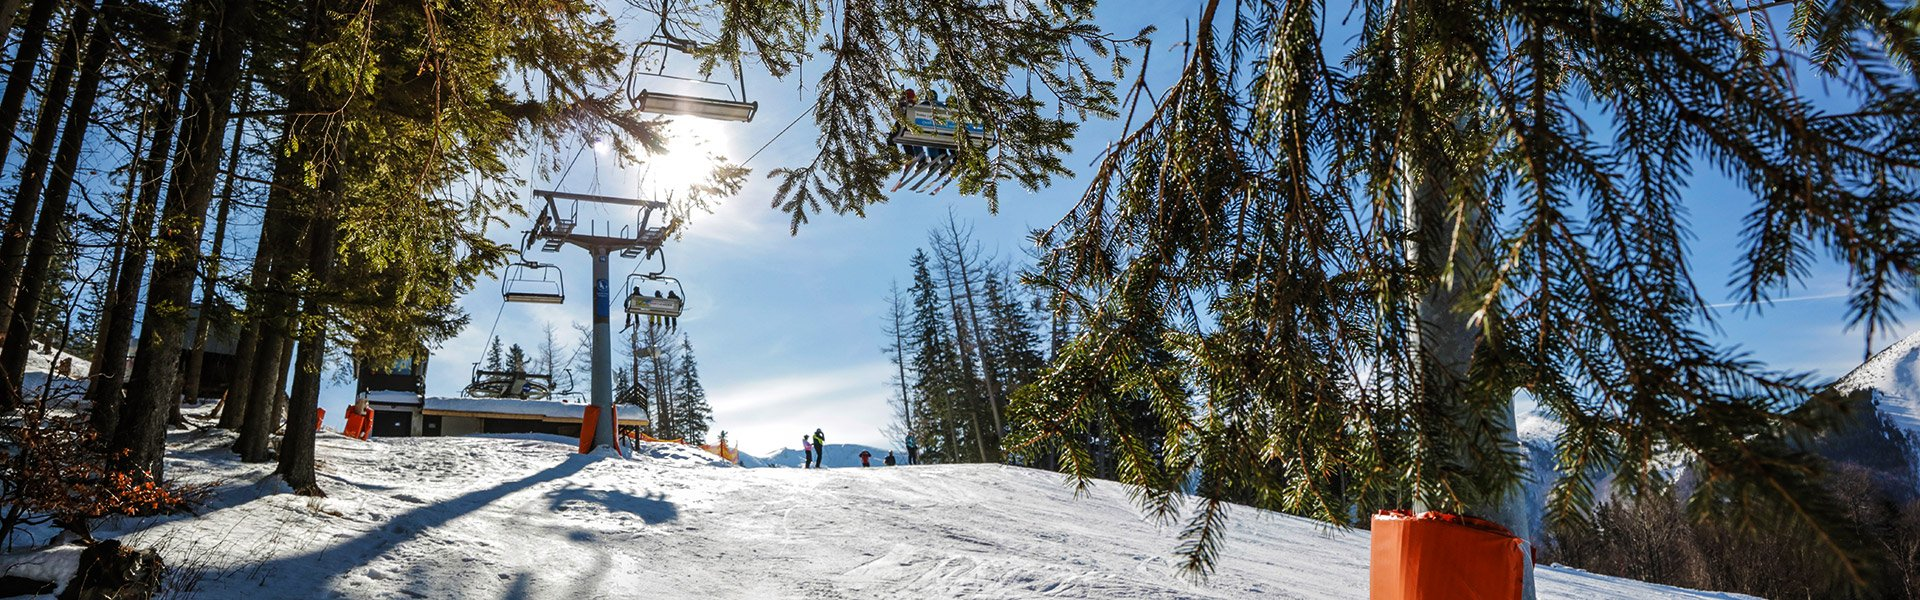 PACKAGES - WINTER 2018 SKI HOLIDAY IN THE MOUNTAINS OF MALA FATRA - SLOVAKIA